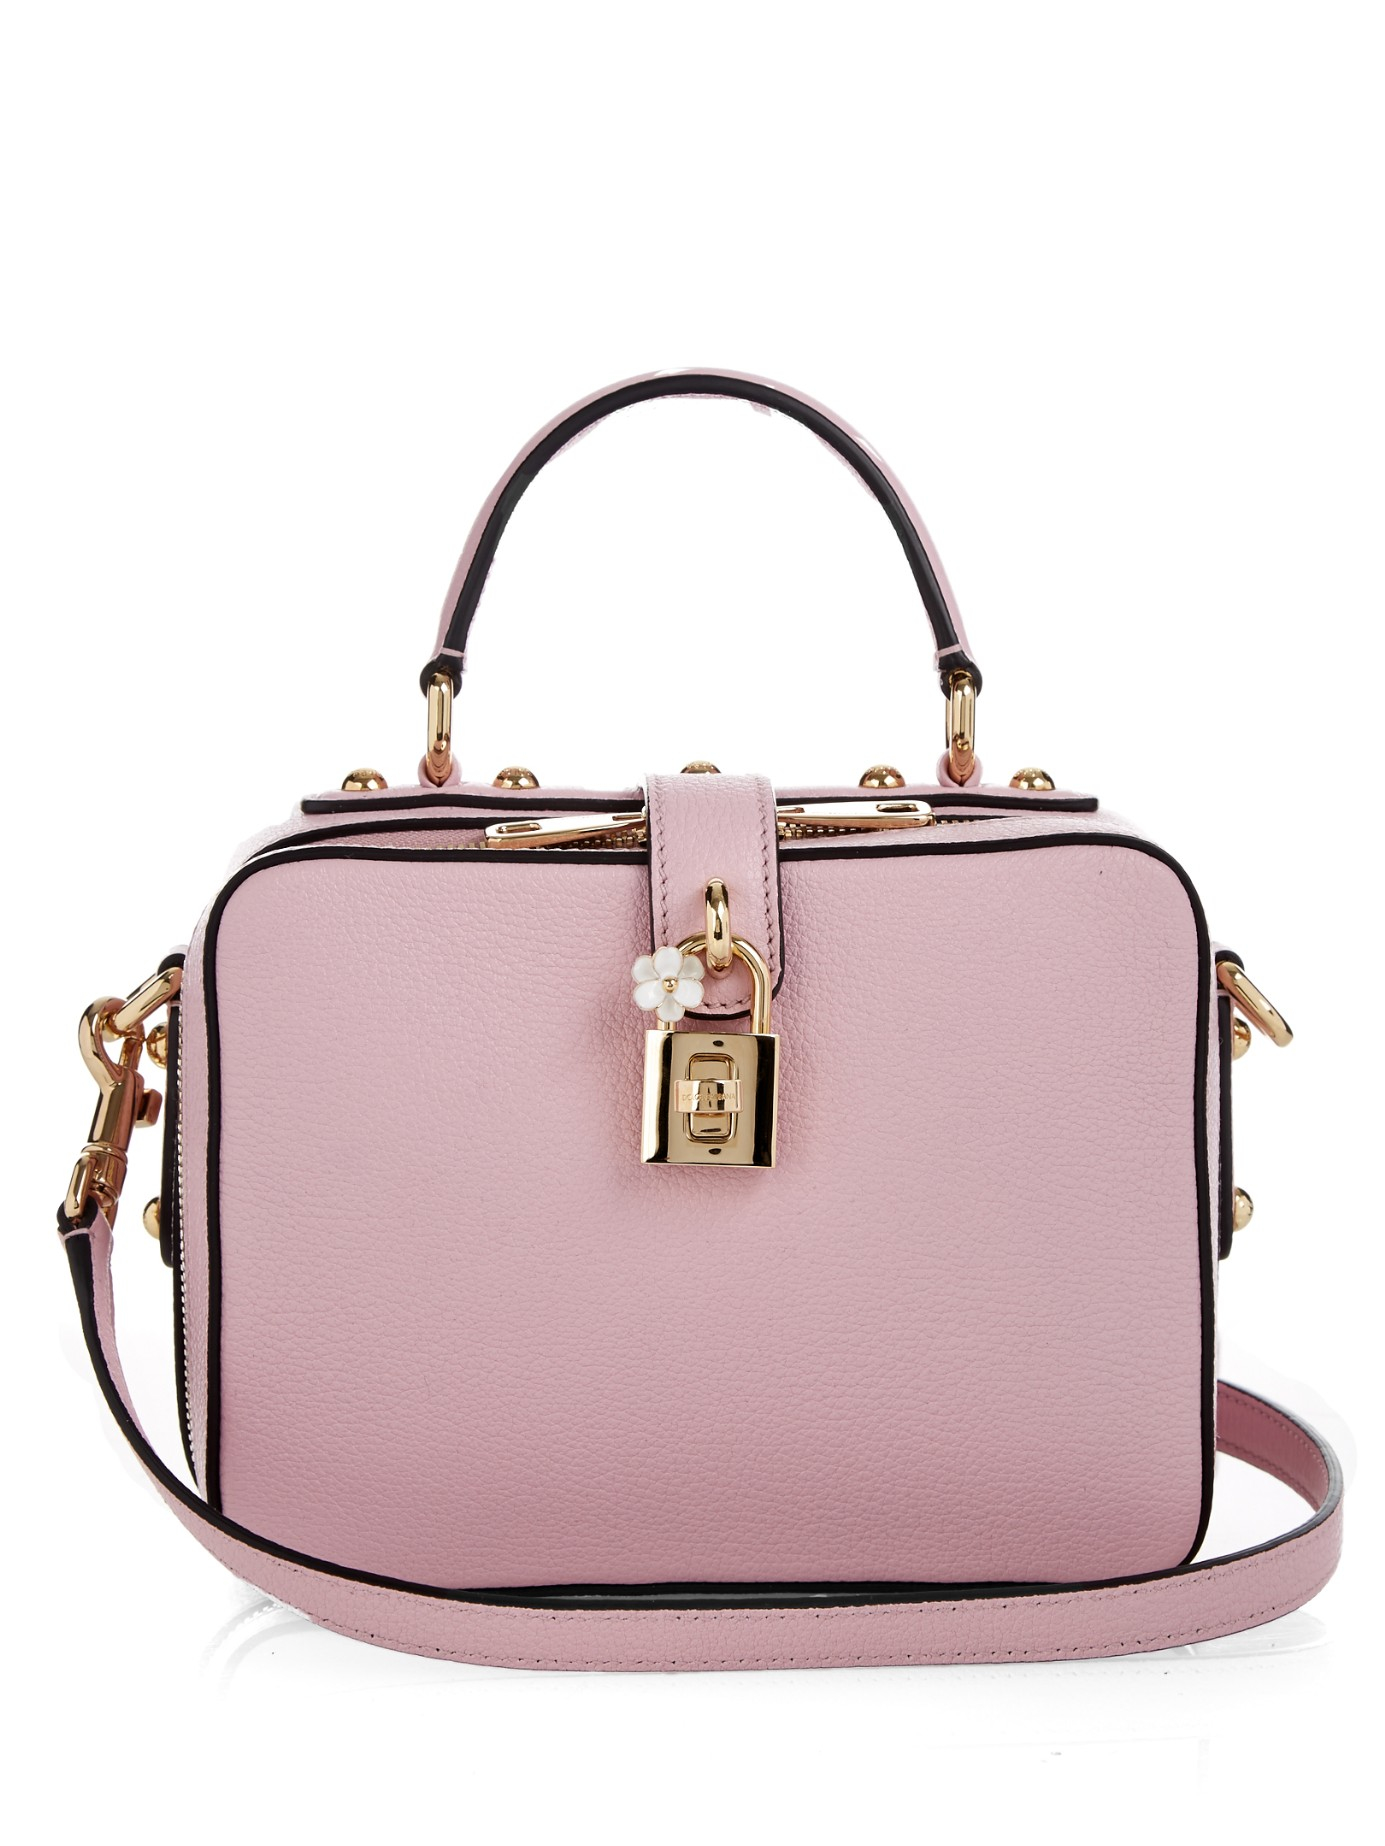 a873d12101 Lyst - Dolce   Gabbana Rosaria Leather Box Bag in Pink